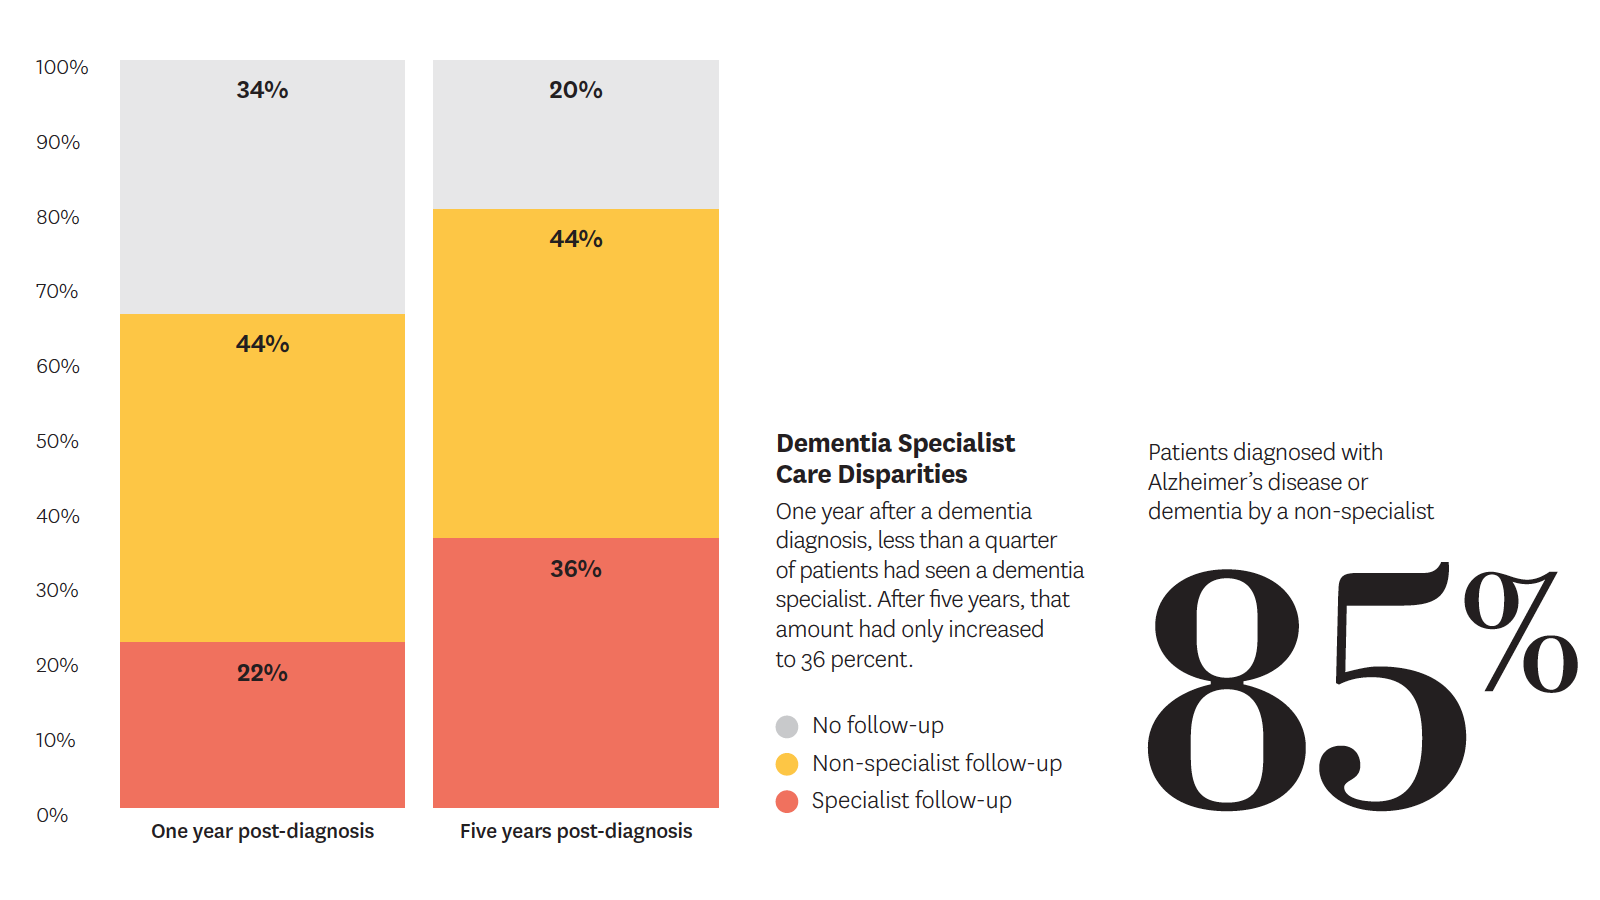 85% of patients diagnosed with Alzheimer's disease or dementia are diagnosed by a non-specialist.